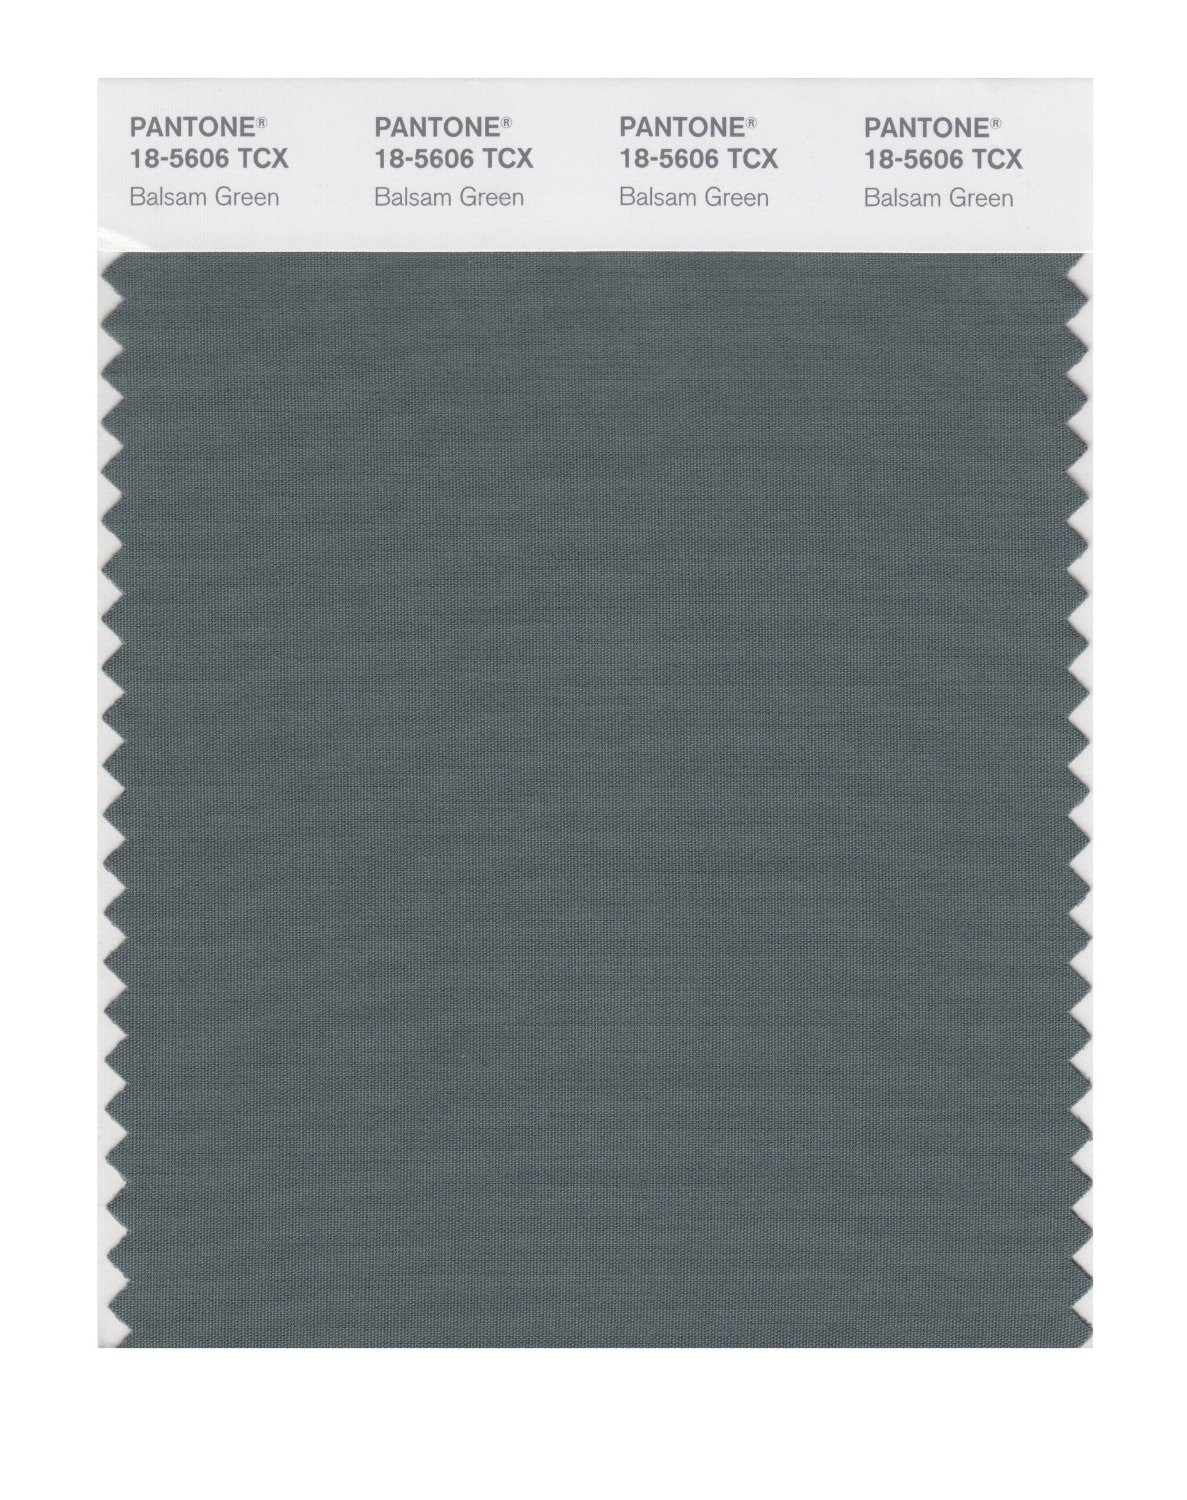 Pantone 18-5606 TCX Swatch Card Balsam Green